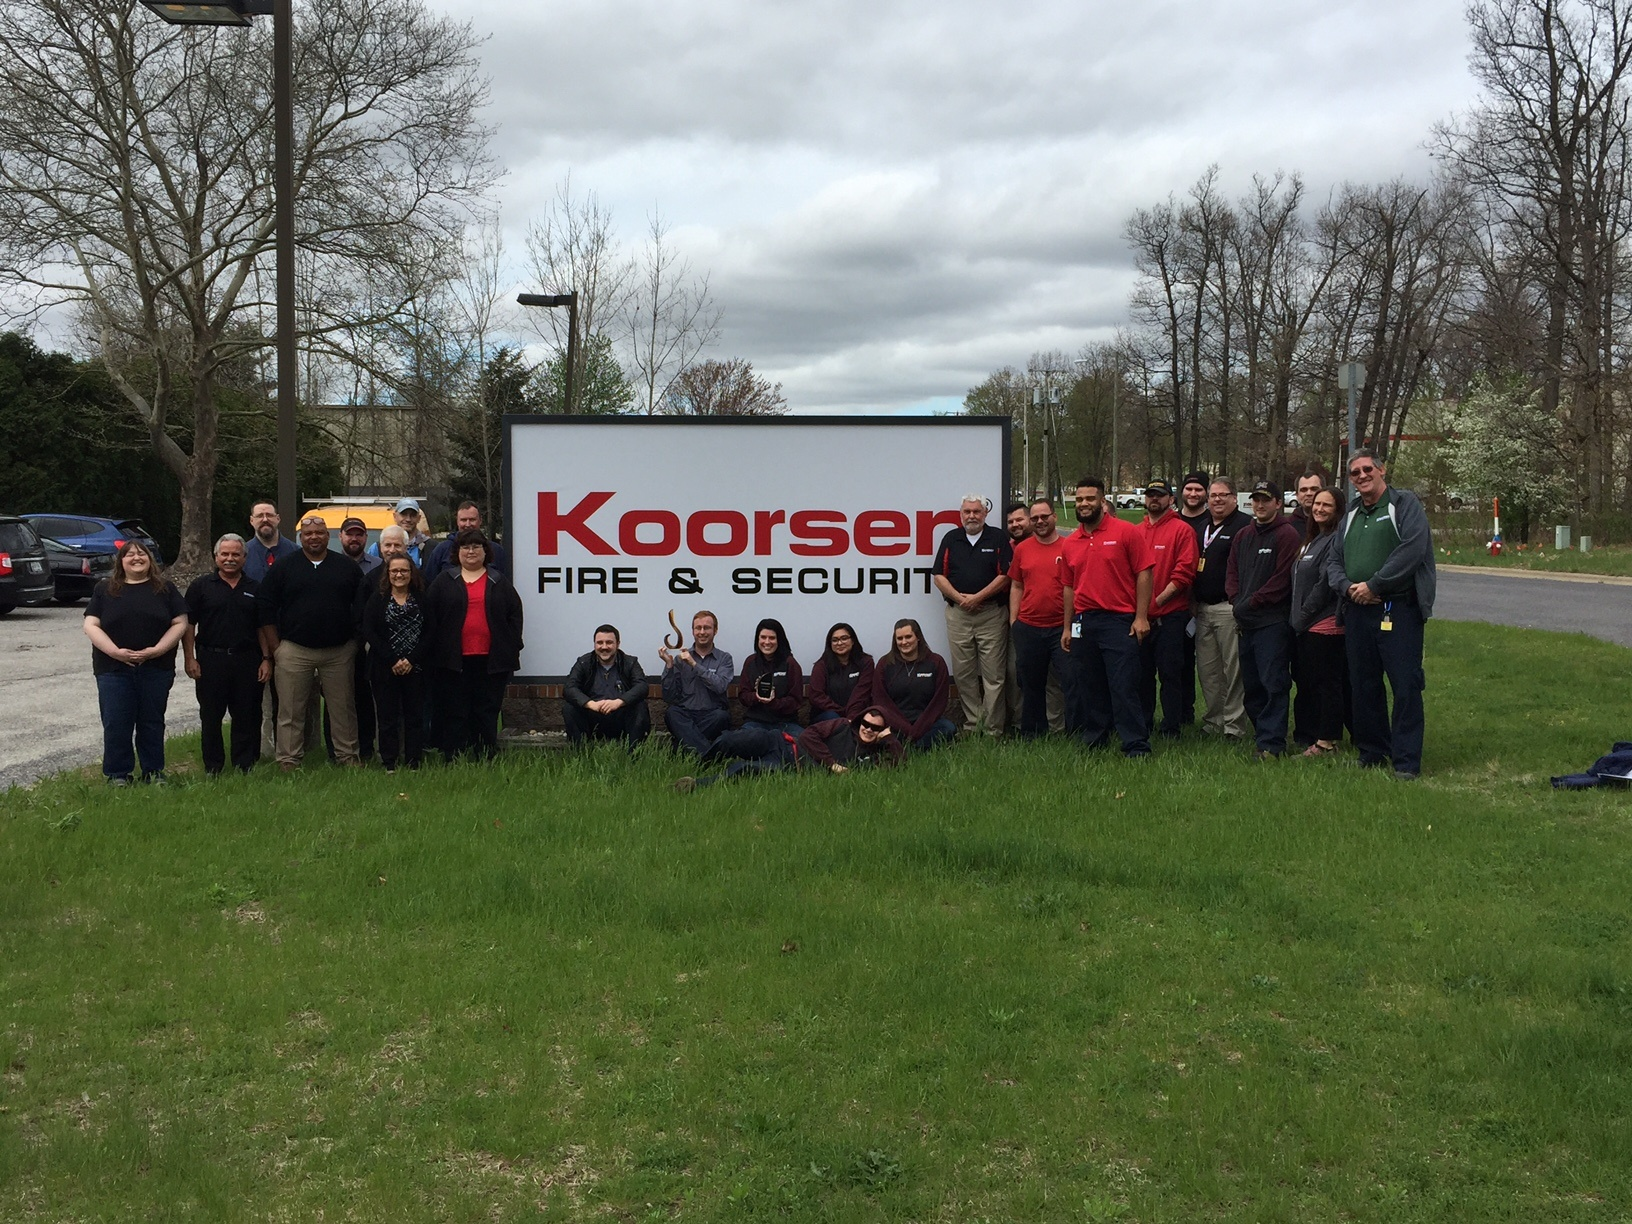 Koorsen Fire & Security Gives Back to the South Bend Community